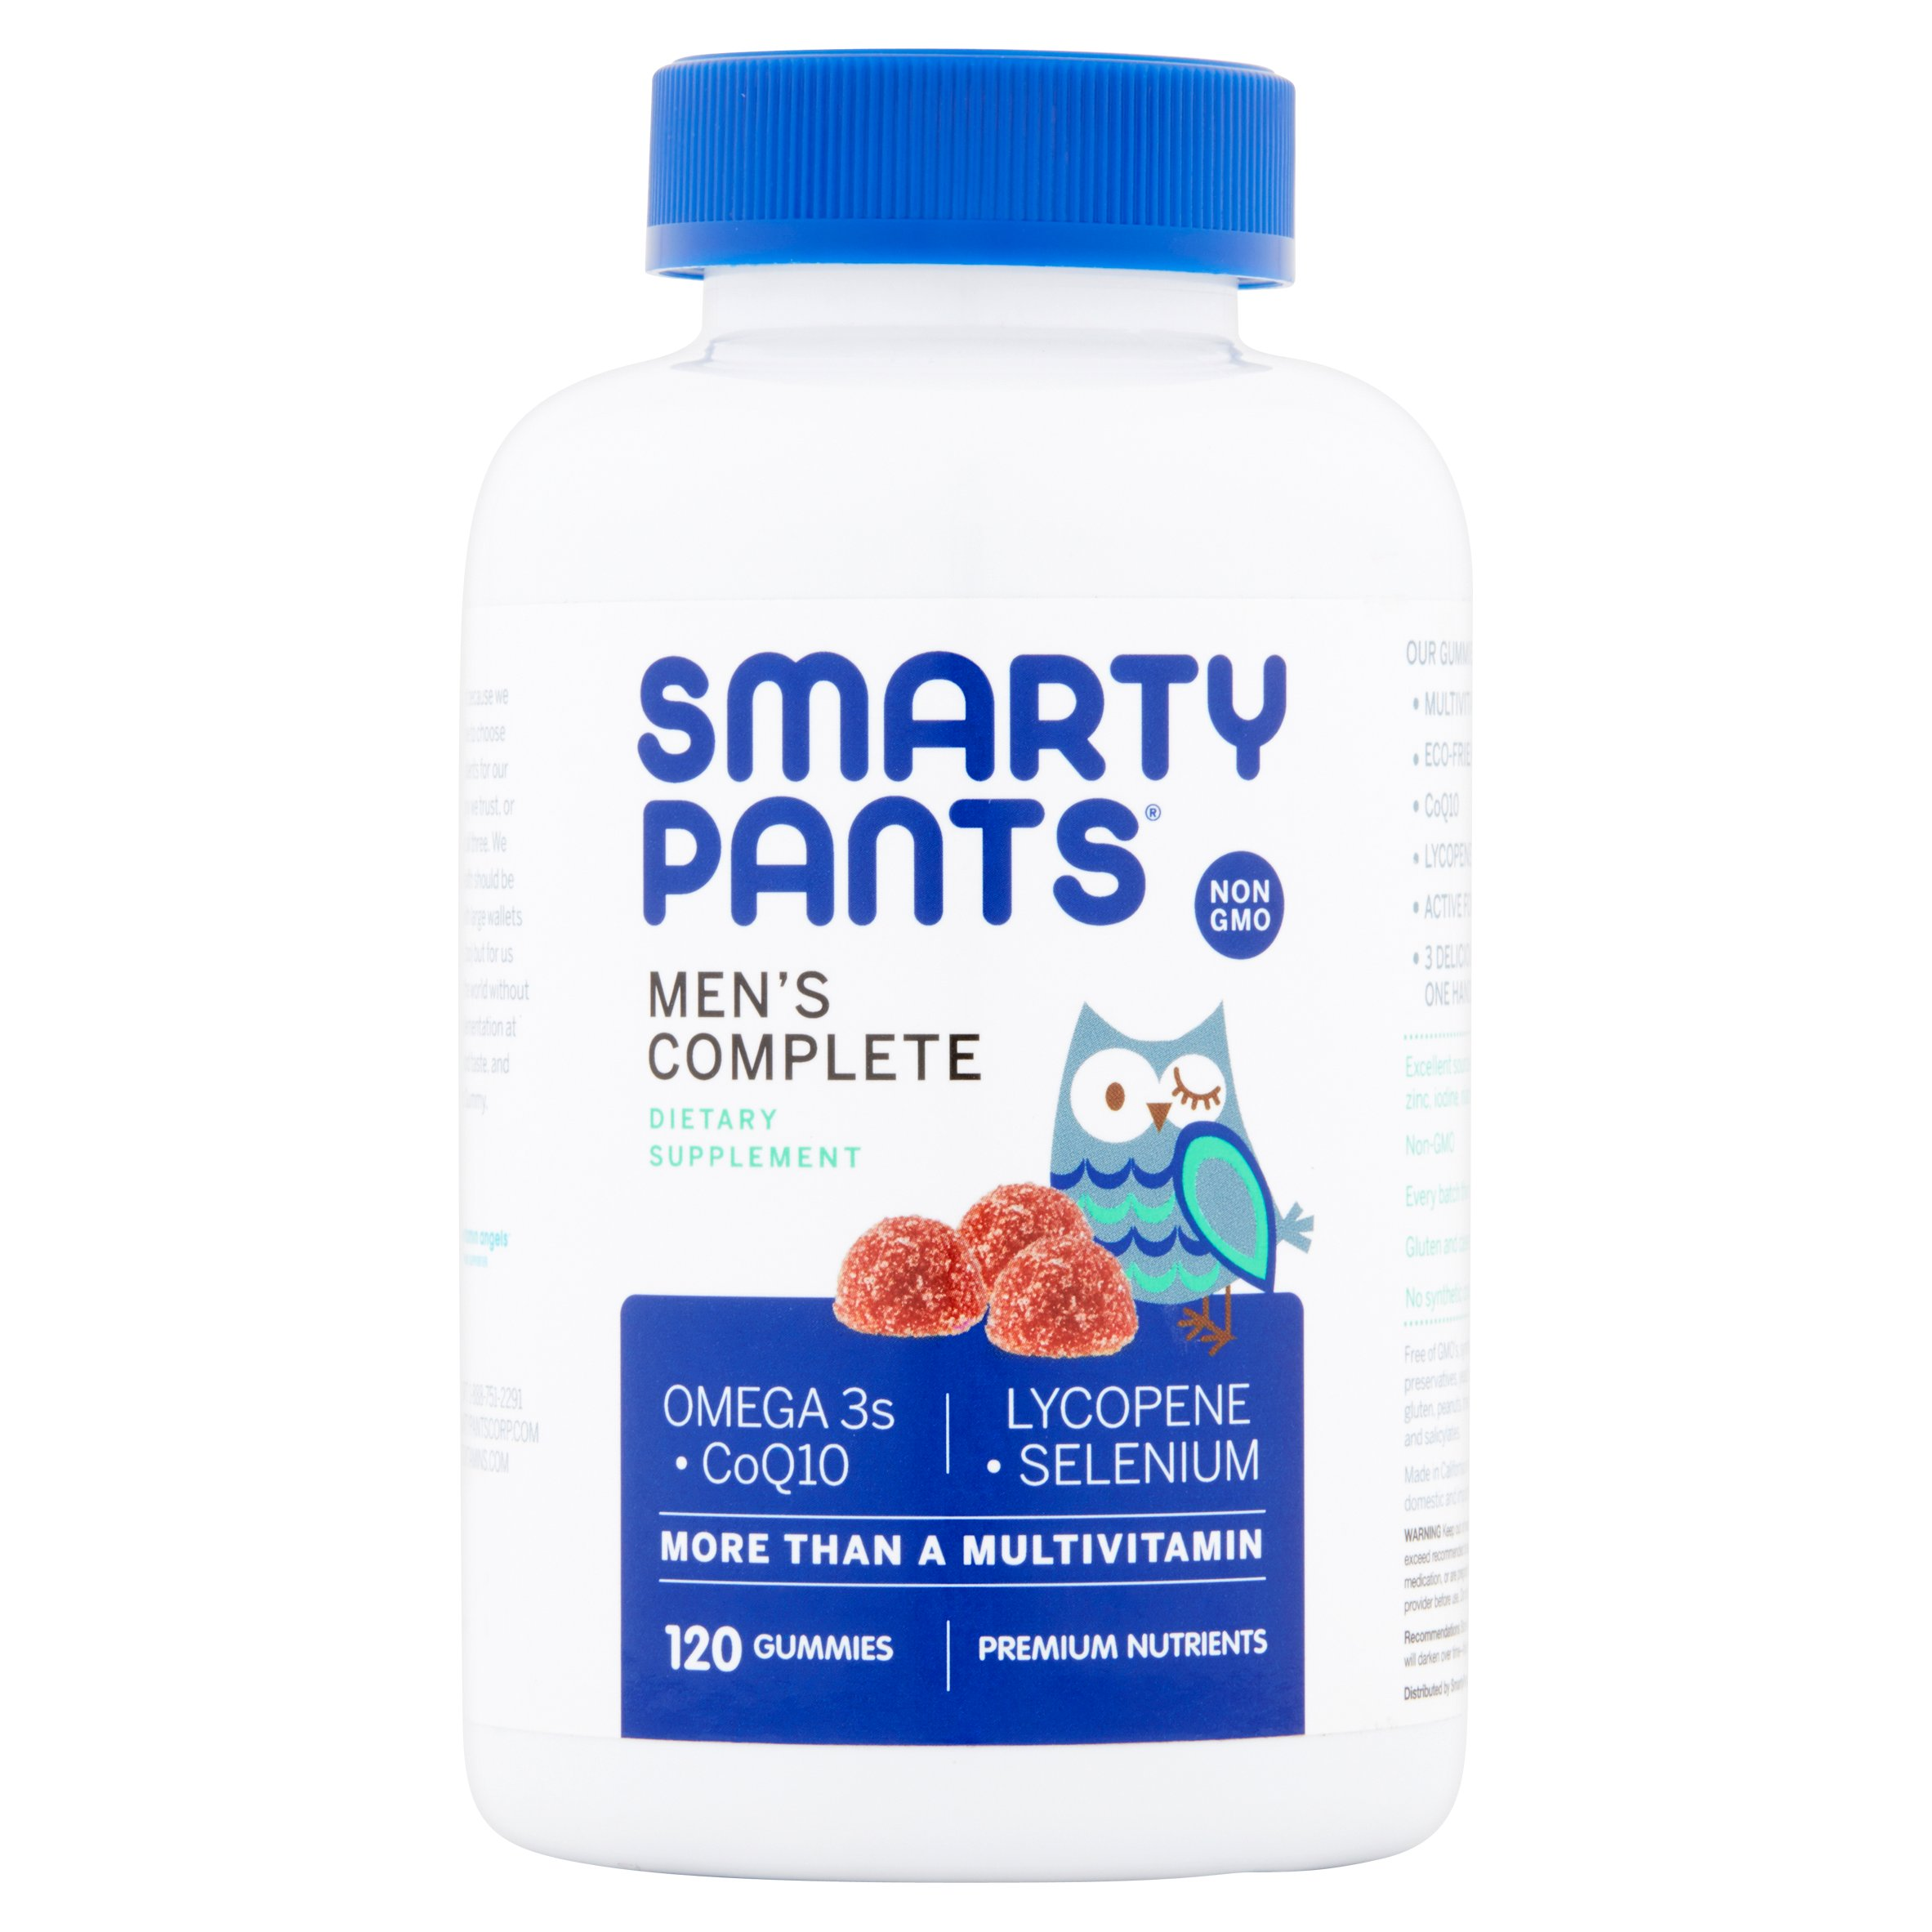 SmartyPants Men's Complete, Dietary Supplement 120 CT Gummies